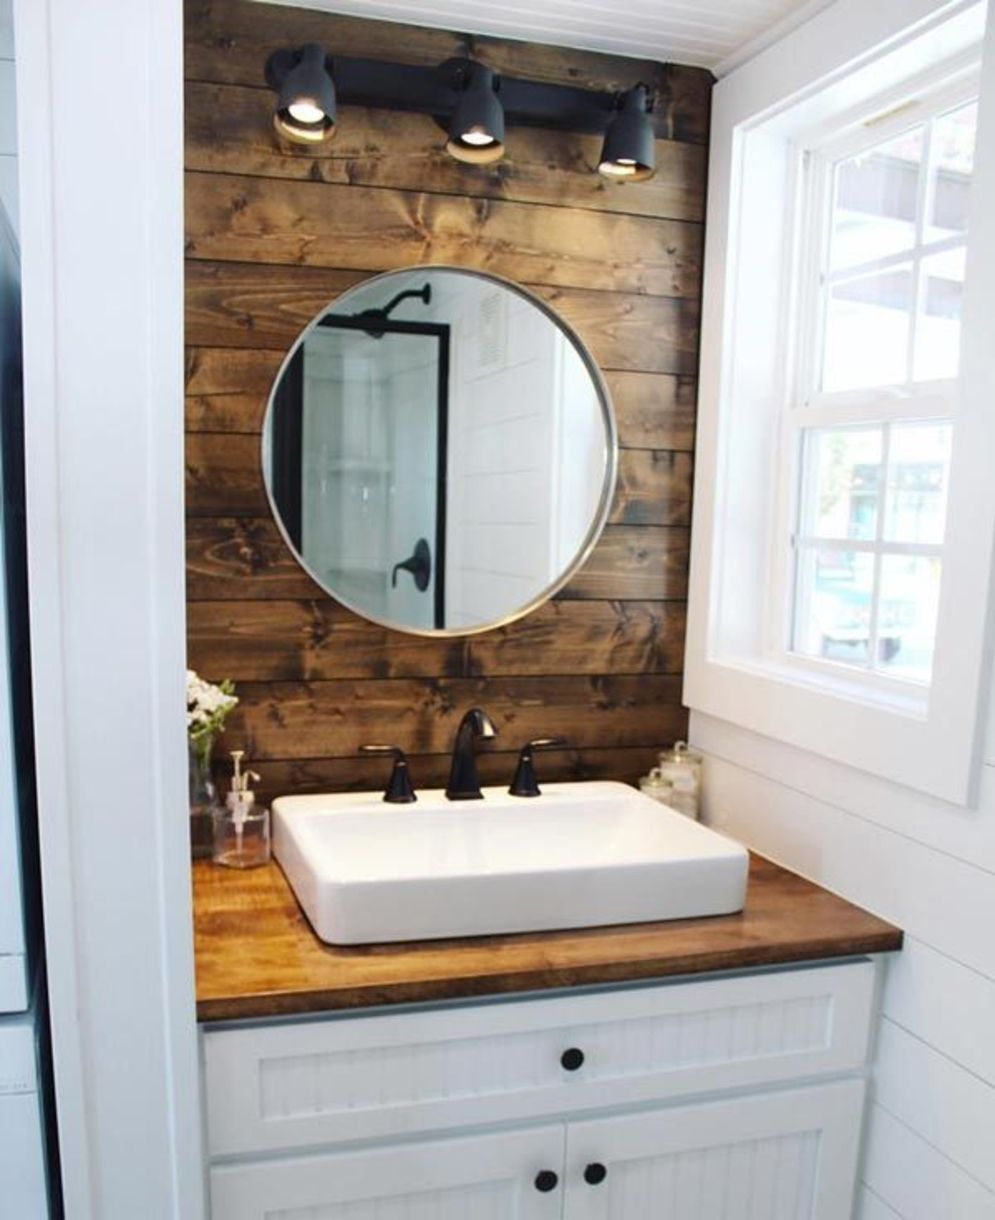 Timeless bathroom designs with wood accents enhancing more natural vibes Image 28